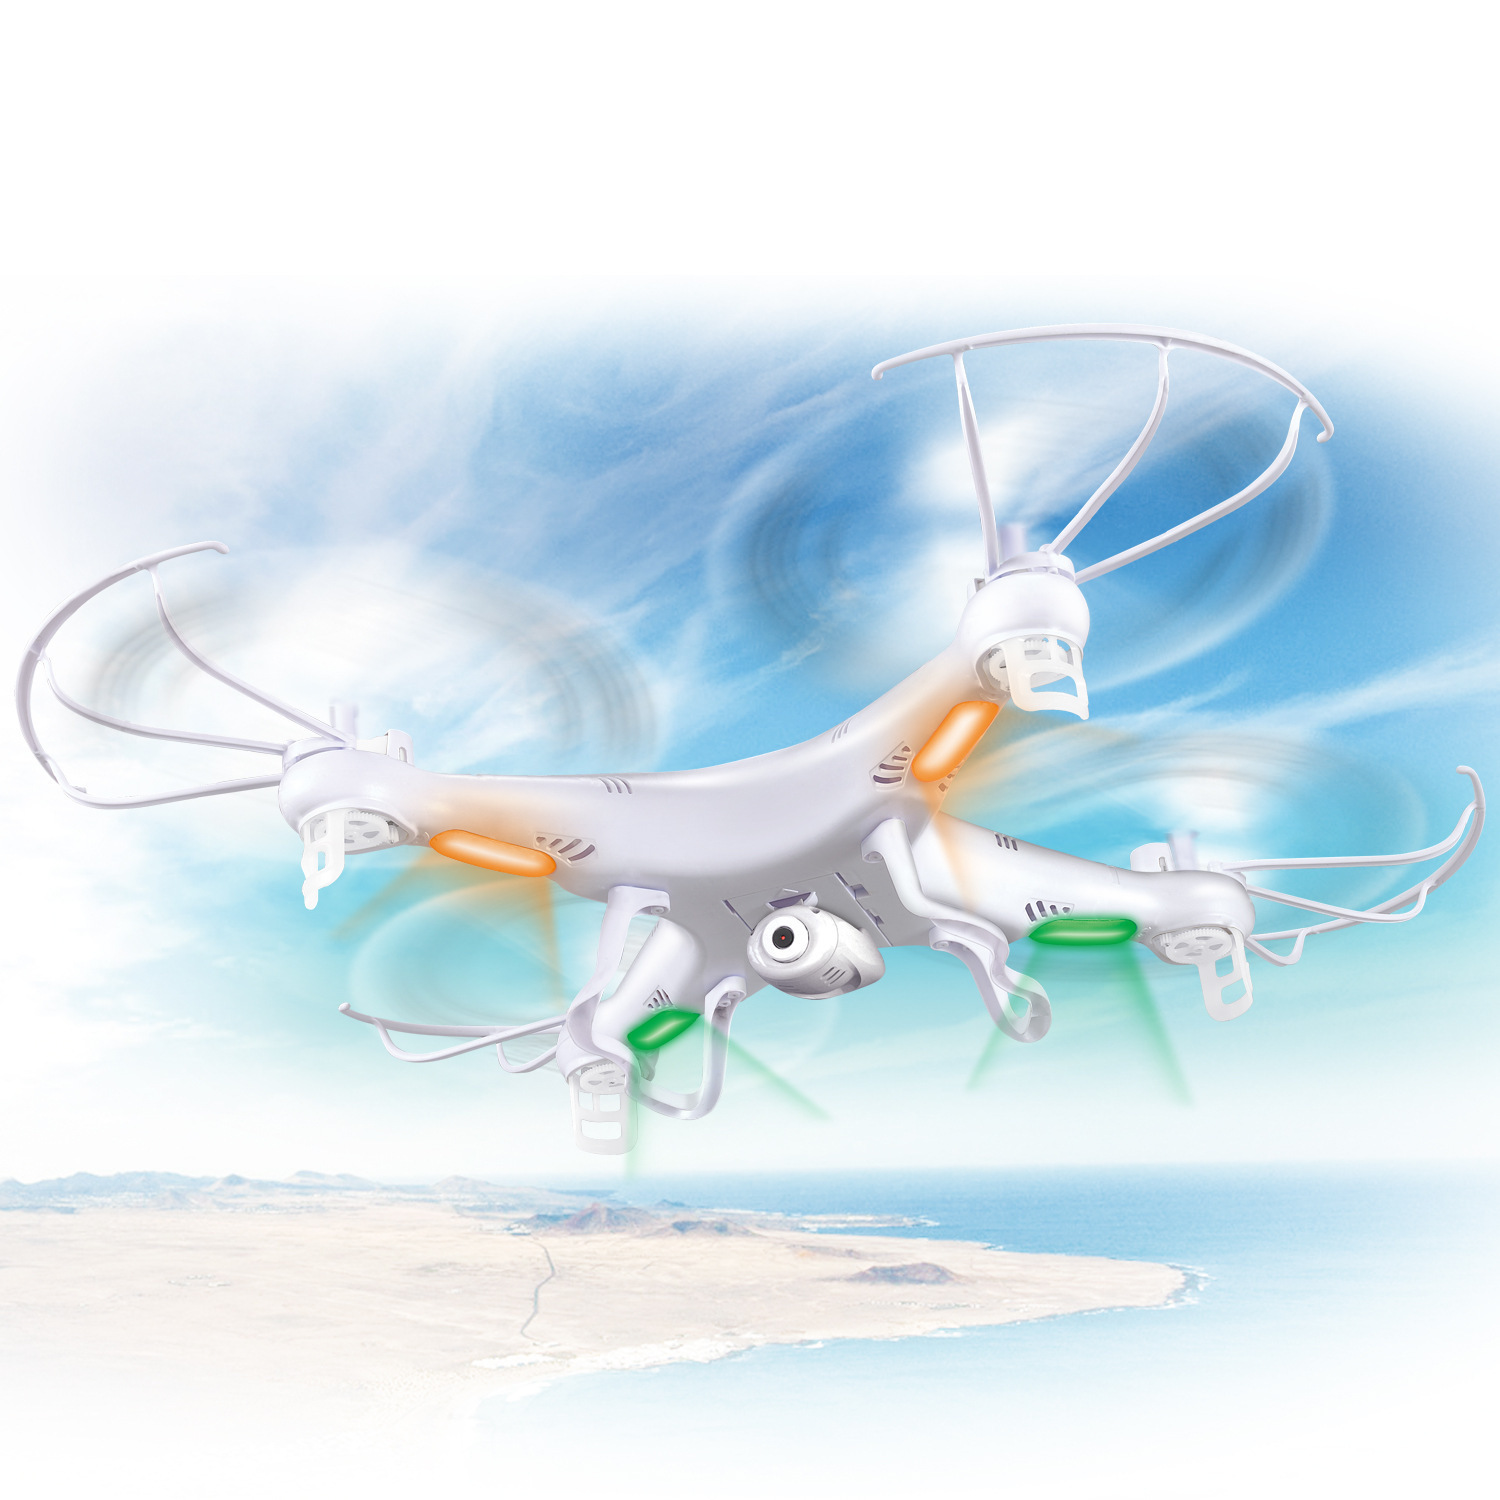 SYMA Sima Model Airplane X5/X5A Six-Axis Gyroscope Unmanned Aerial Vehicle Remote Control Helicopter Quadcopter